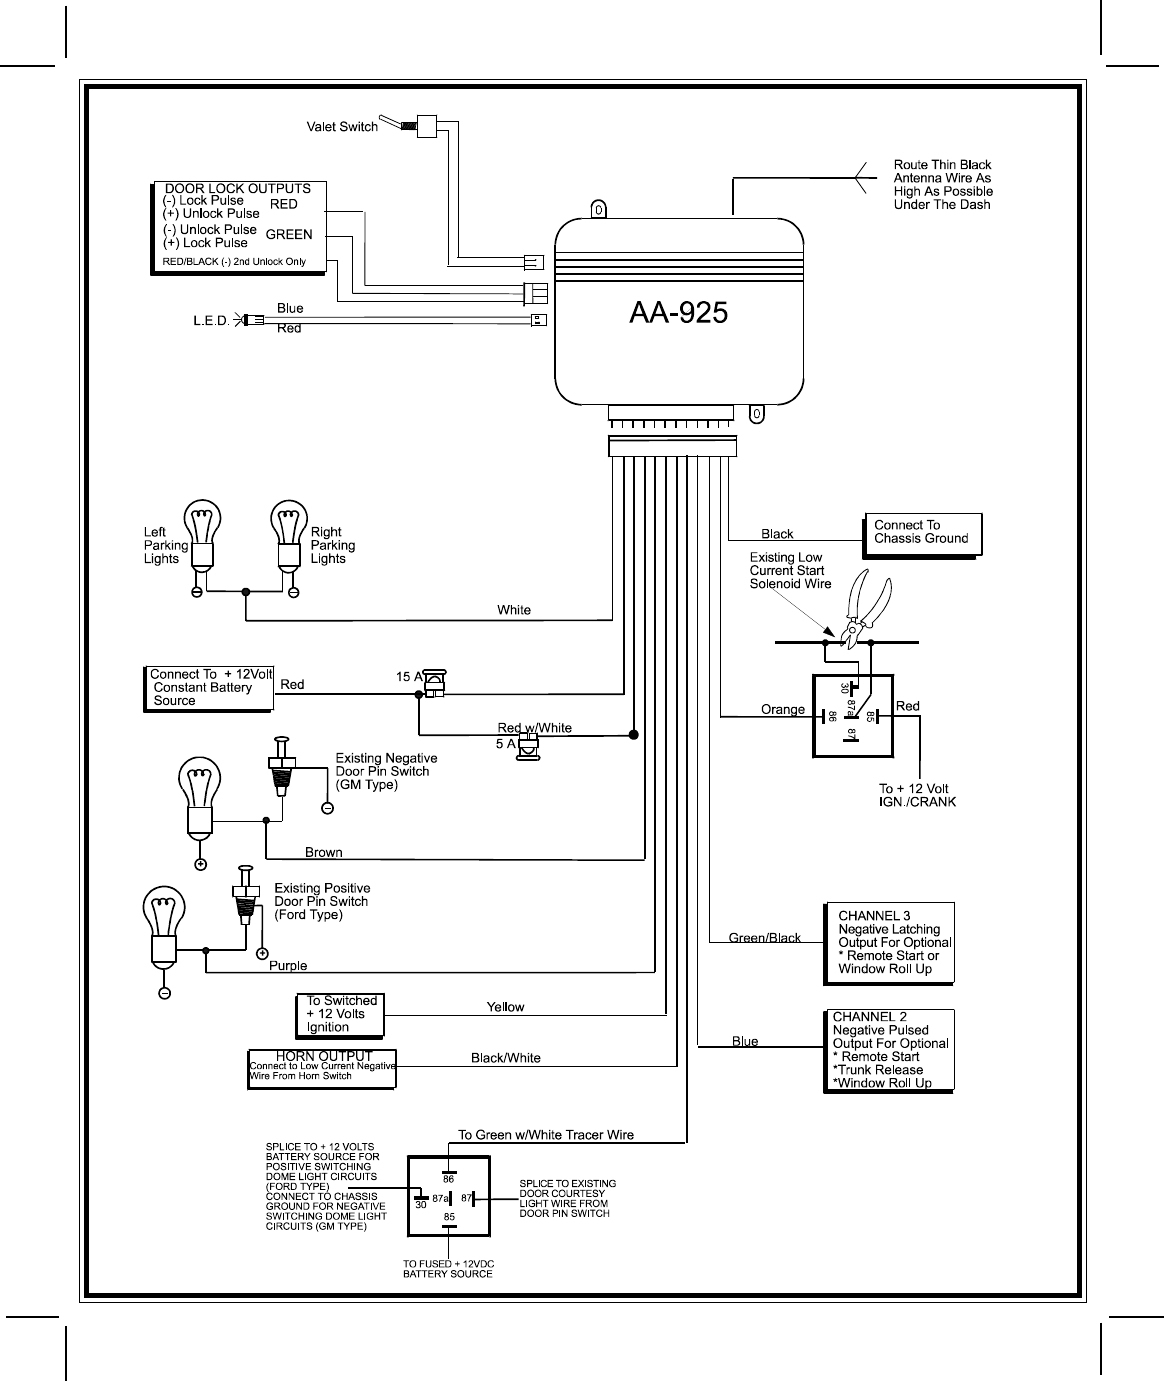 Bulldog Security Rs83B Remote Start Wiring Diagram - Wiring Diagram - Bulldog Wiring Diagram